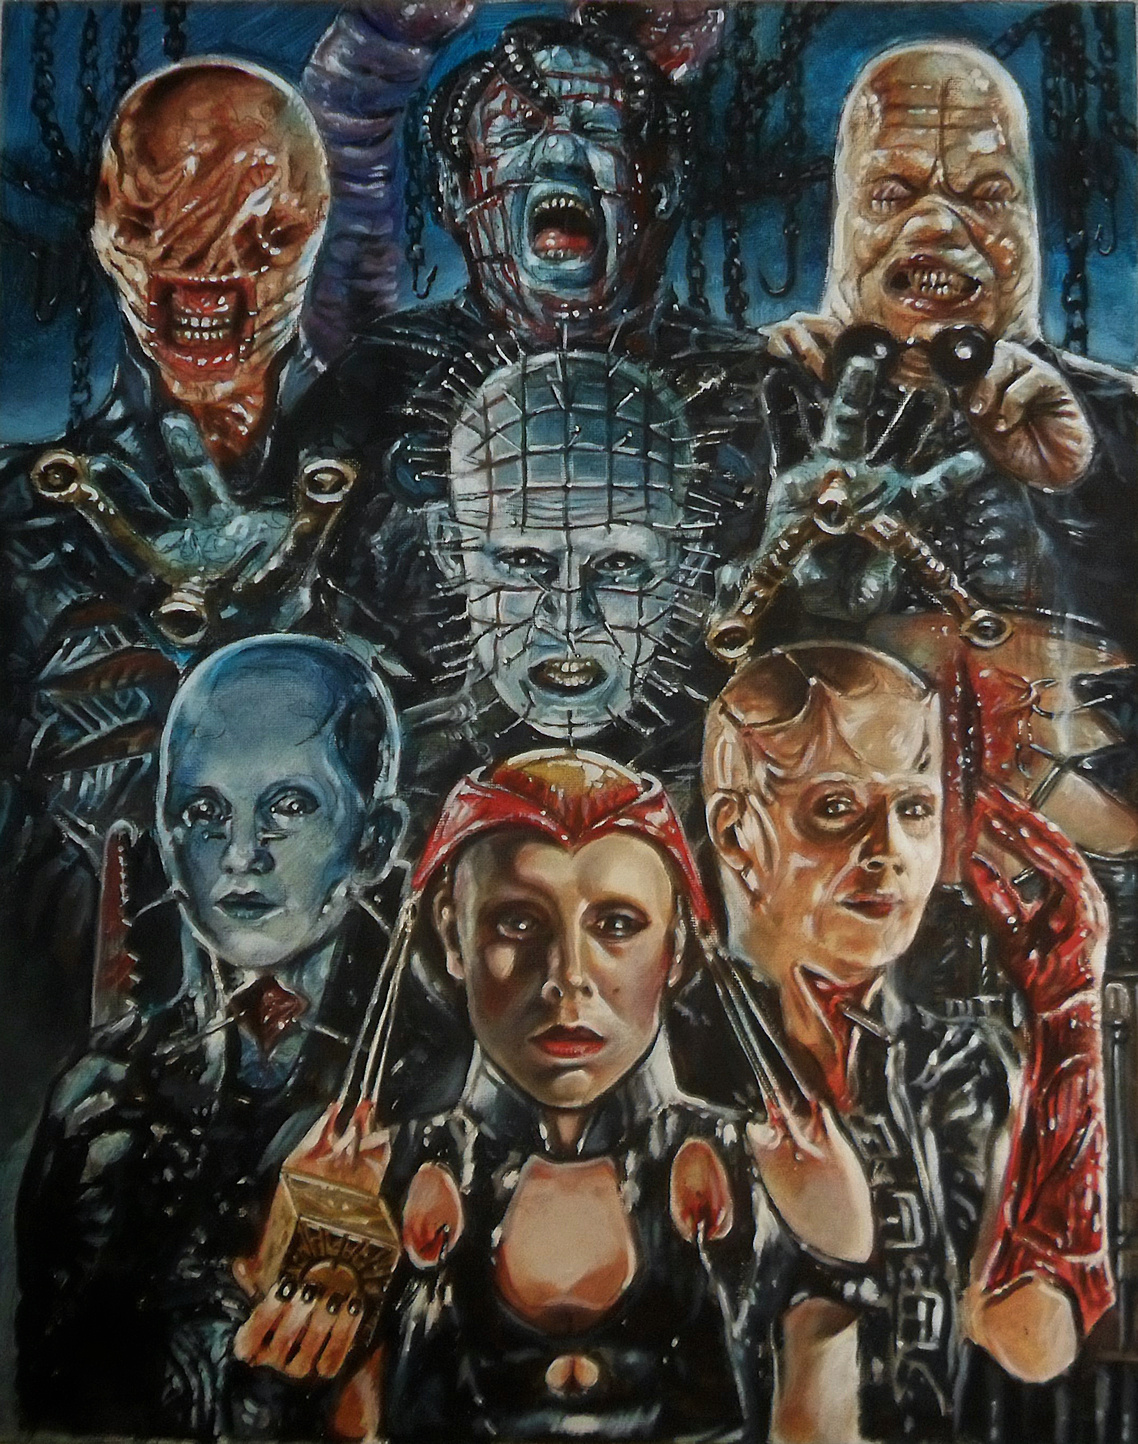 hellraiser cenobites a2 by legrande62 on deviantart